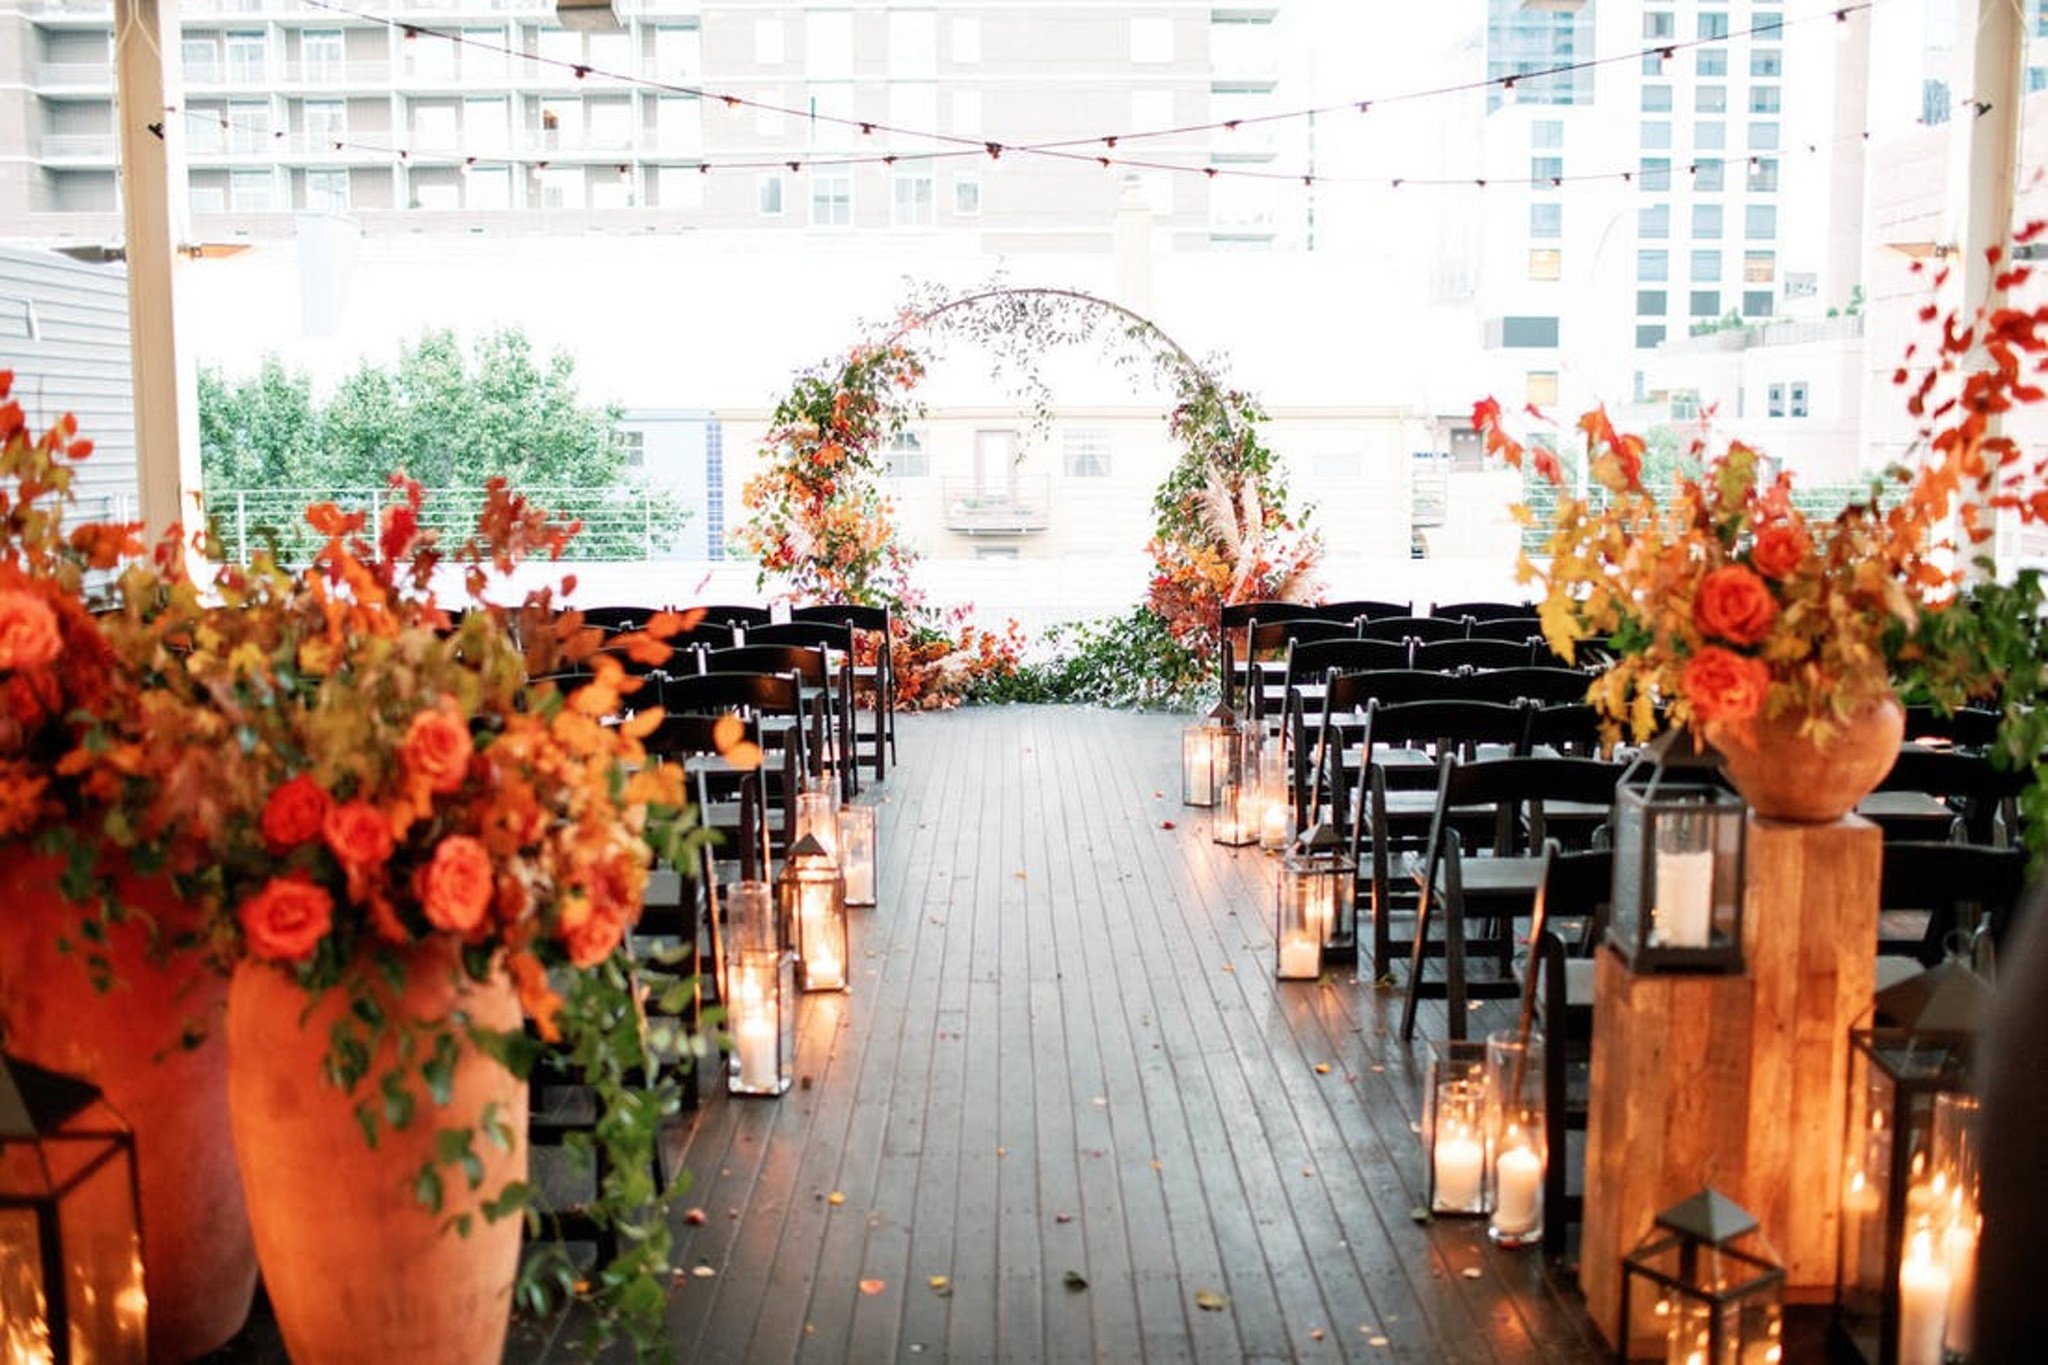 rustic outdoor fall wedding ceremony aisle lined with candles, lanterns orange flowers and a circular floral arch at the end made of orange flowers and greenery